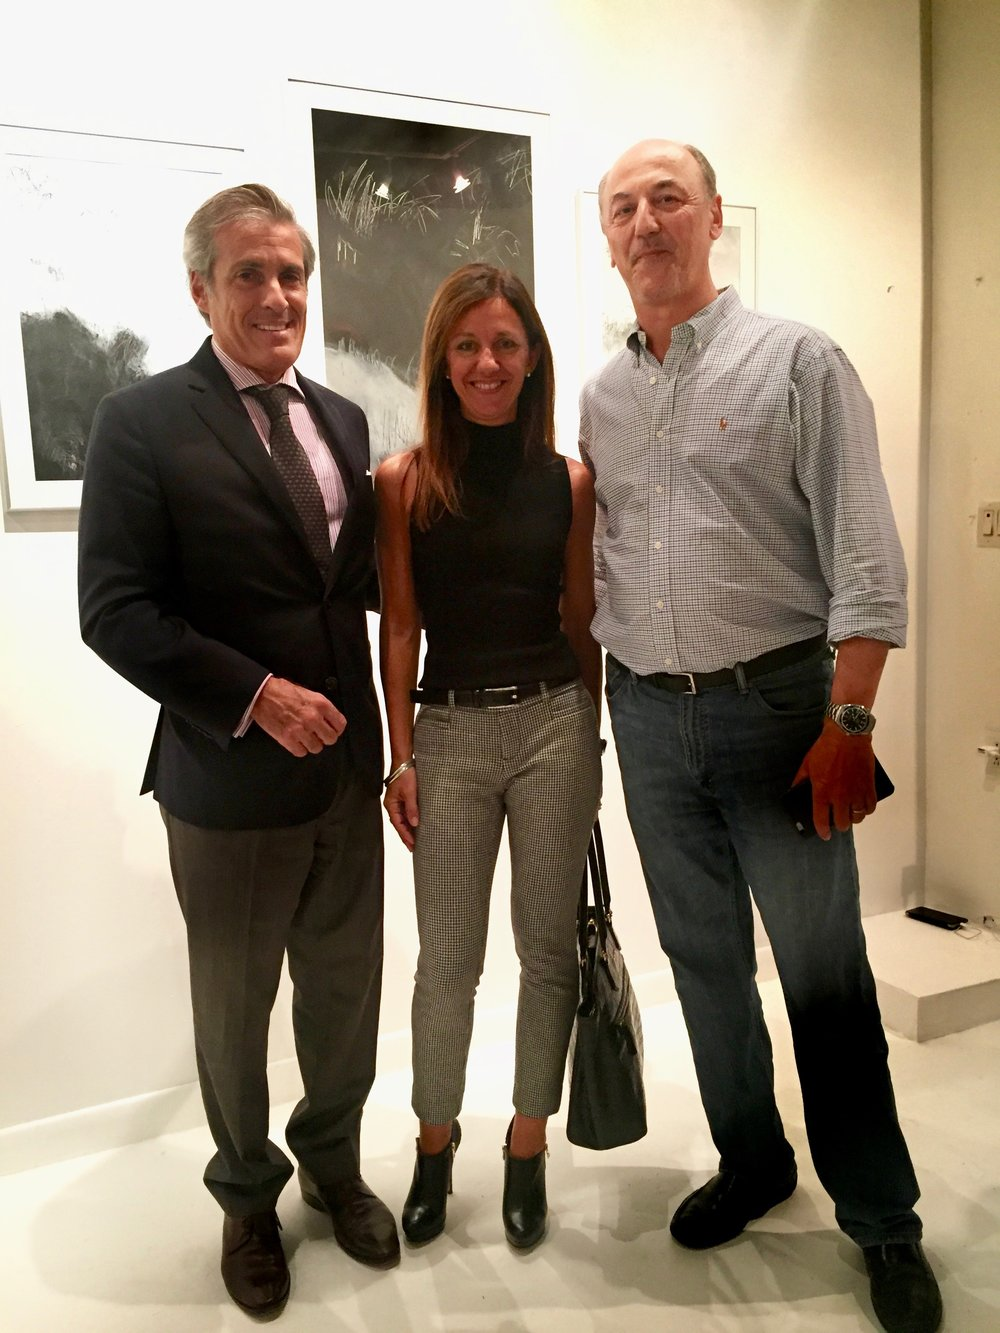 Ricardo and Graciela Trotti, with Argentine Consul in Miami, Marcelo Guisto